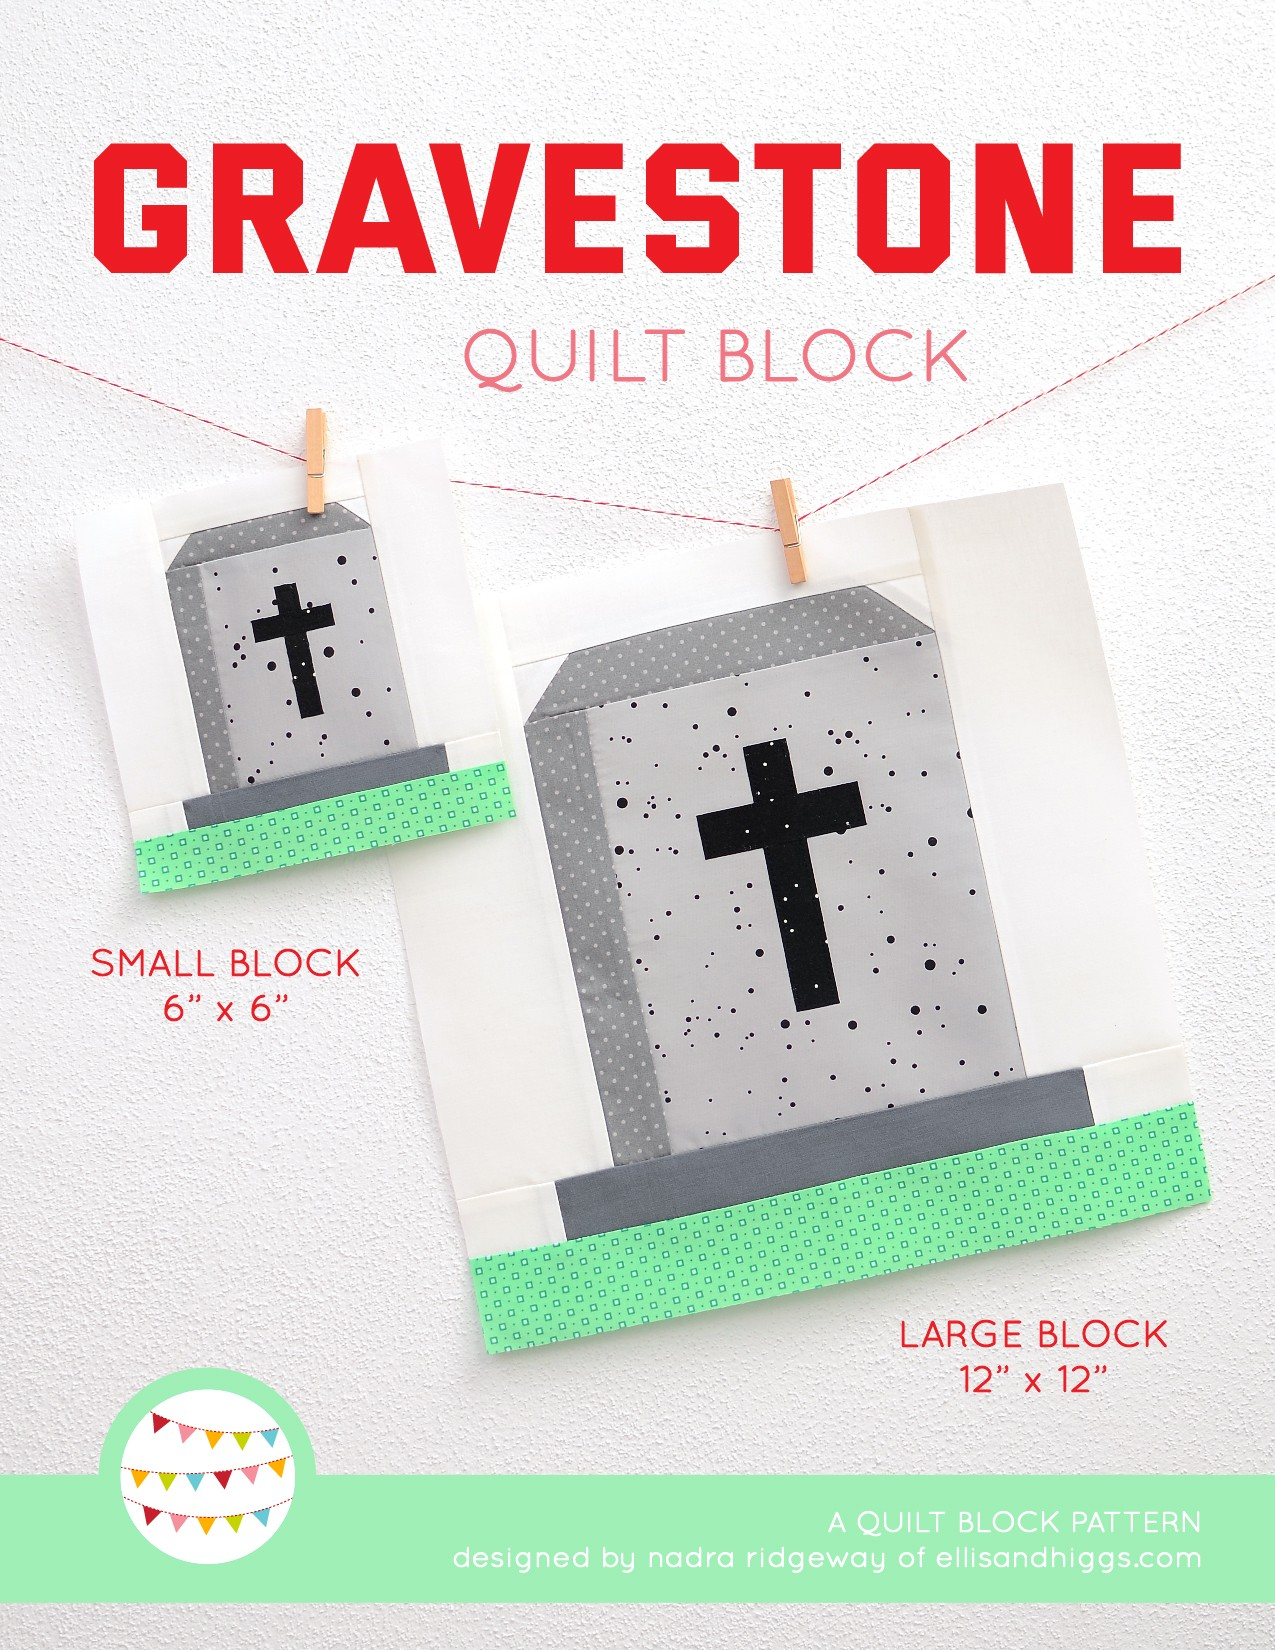 Gravestone quilt block in two sizes hanging on a wall